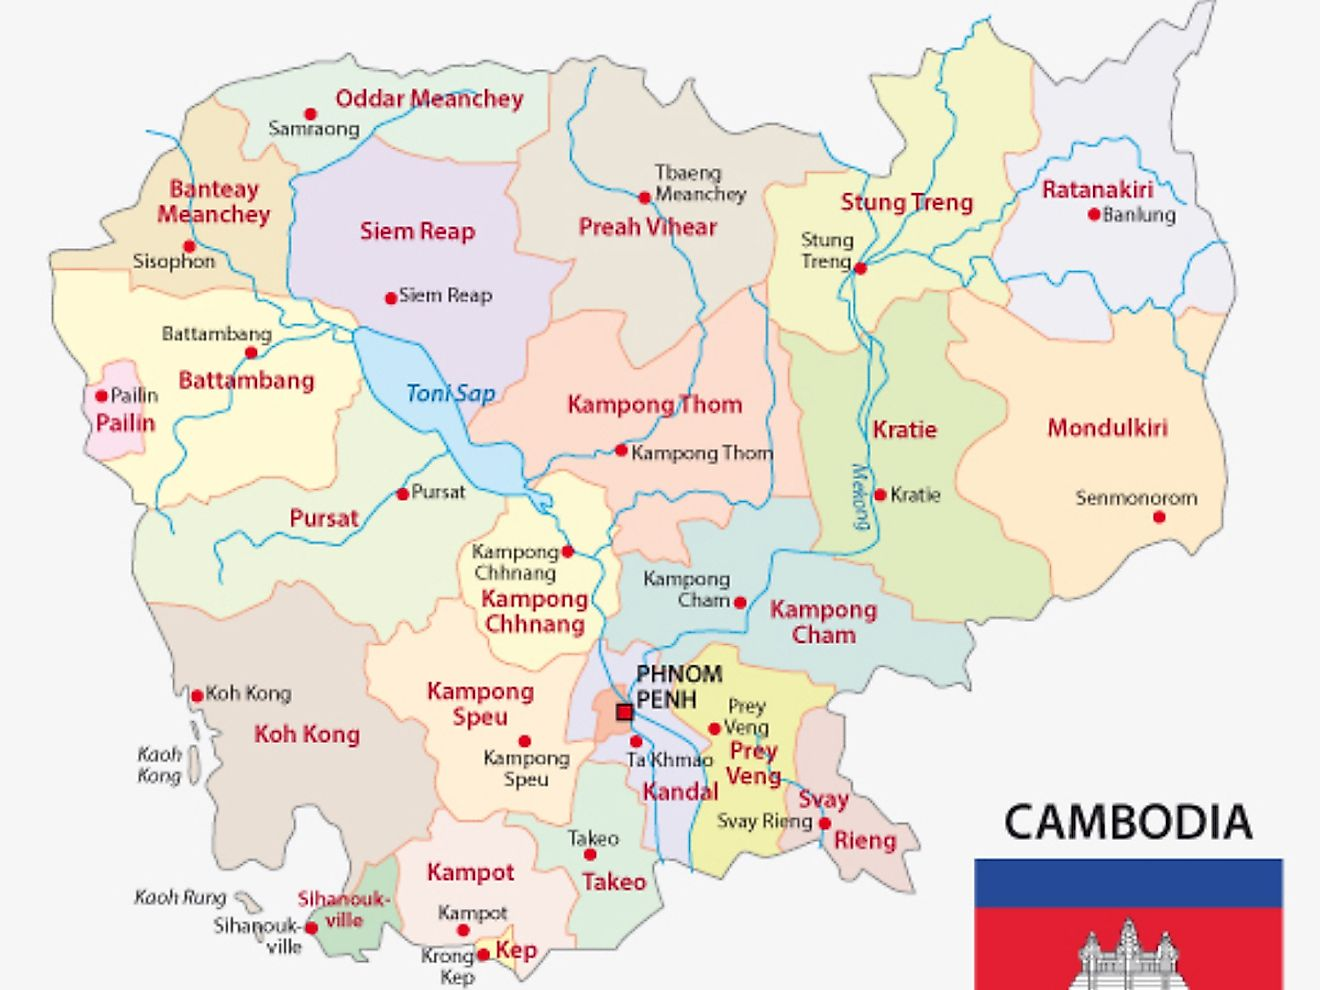 Political Map of Cambodia showing 21 provinces, their capitals, and the national capital of Phnom Penh.